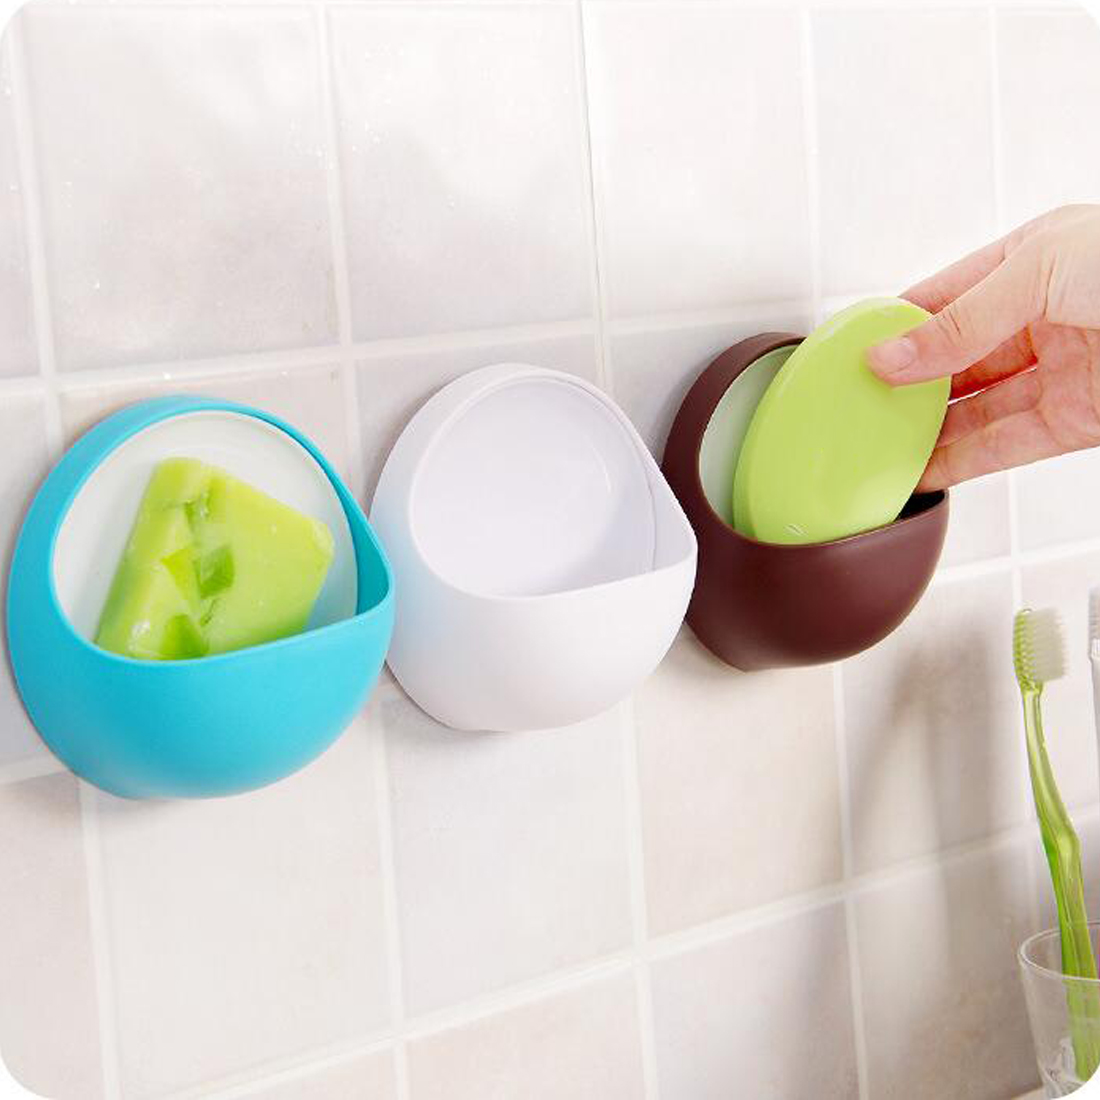 Bathroom Accessories Plastic Suction Cup Soap Toothbrush Box Dish Holder Drain Rack Bathroom Shower Accessory